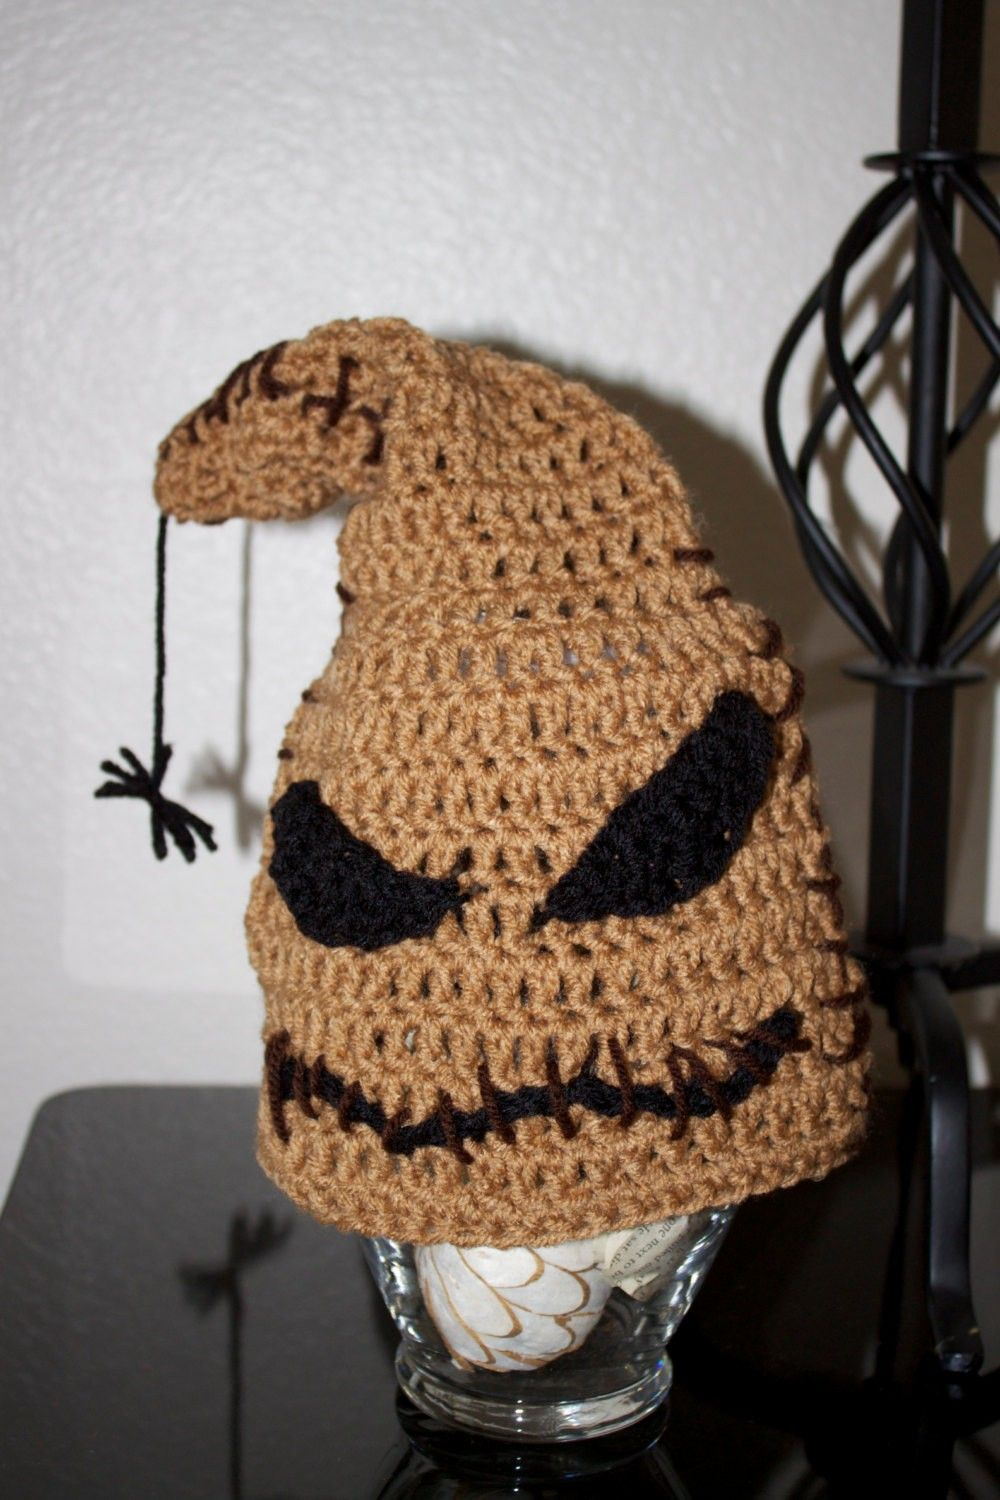 Oogie Boogie Inspired Hat Nightmare Before Christmas Crochet Hat with Ear Flaps Made to Order